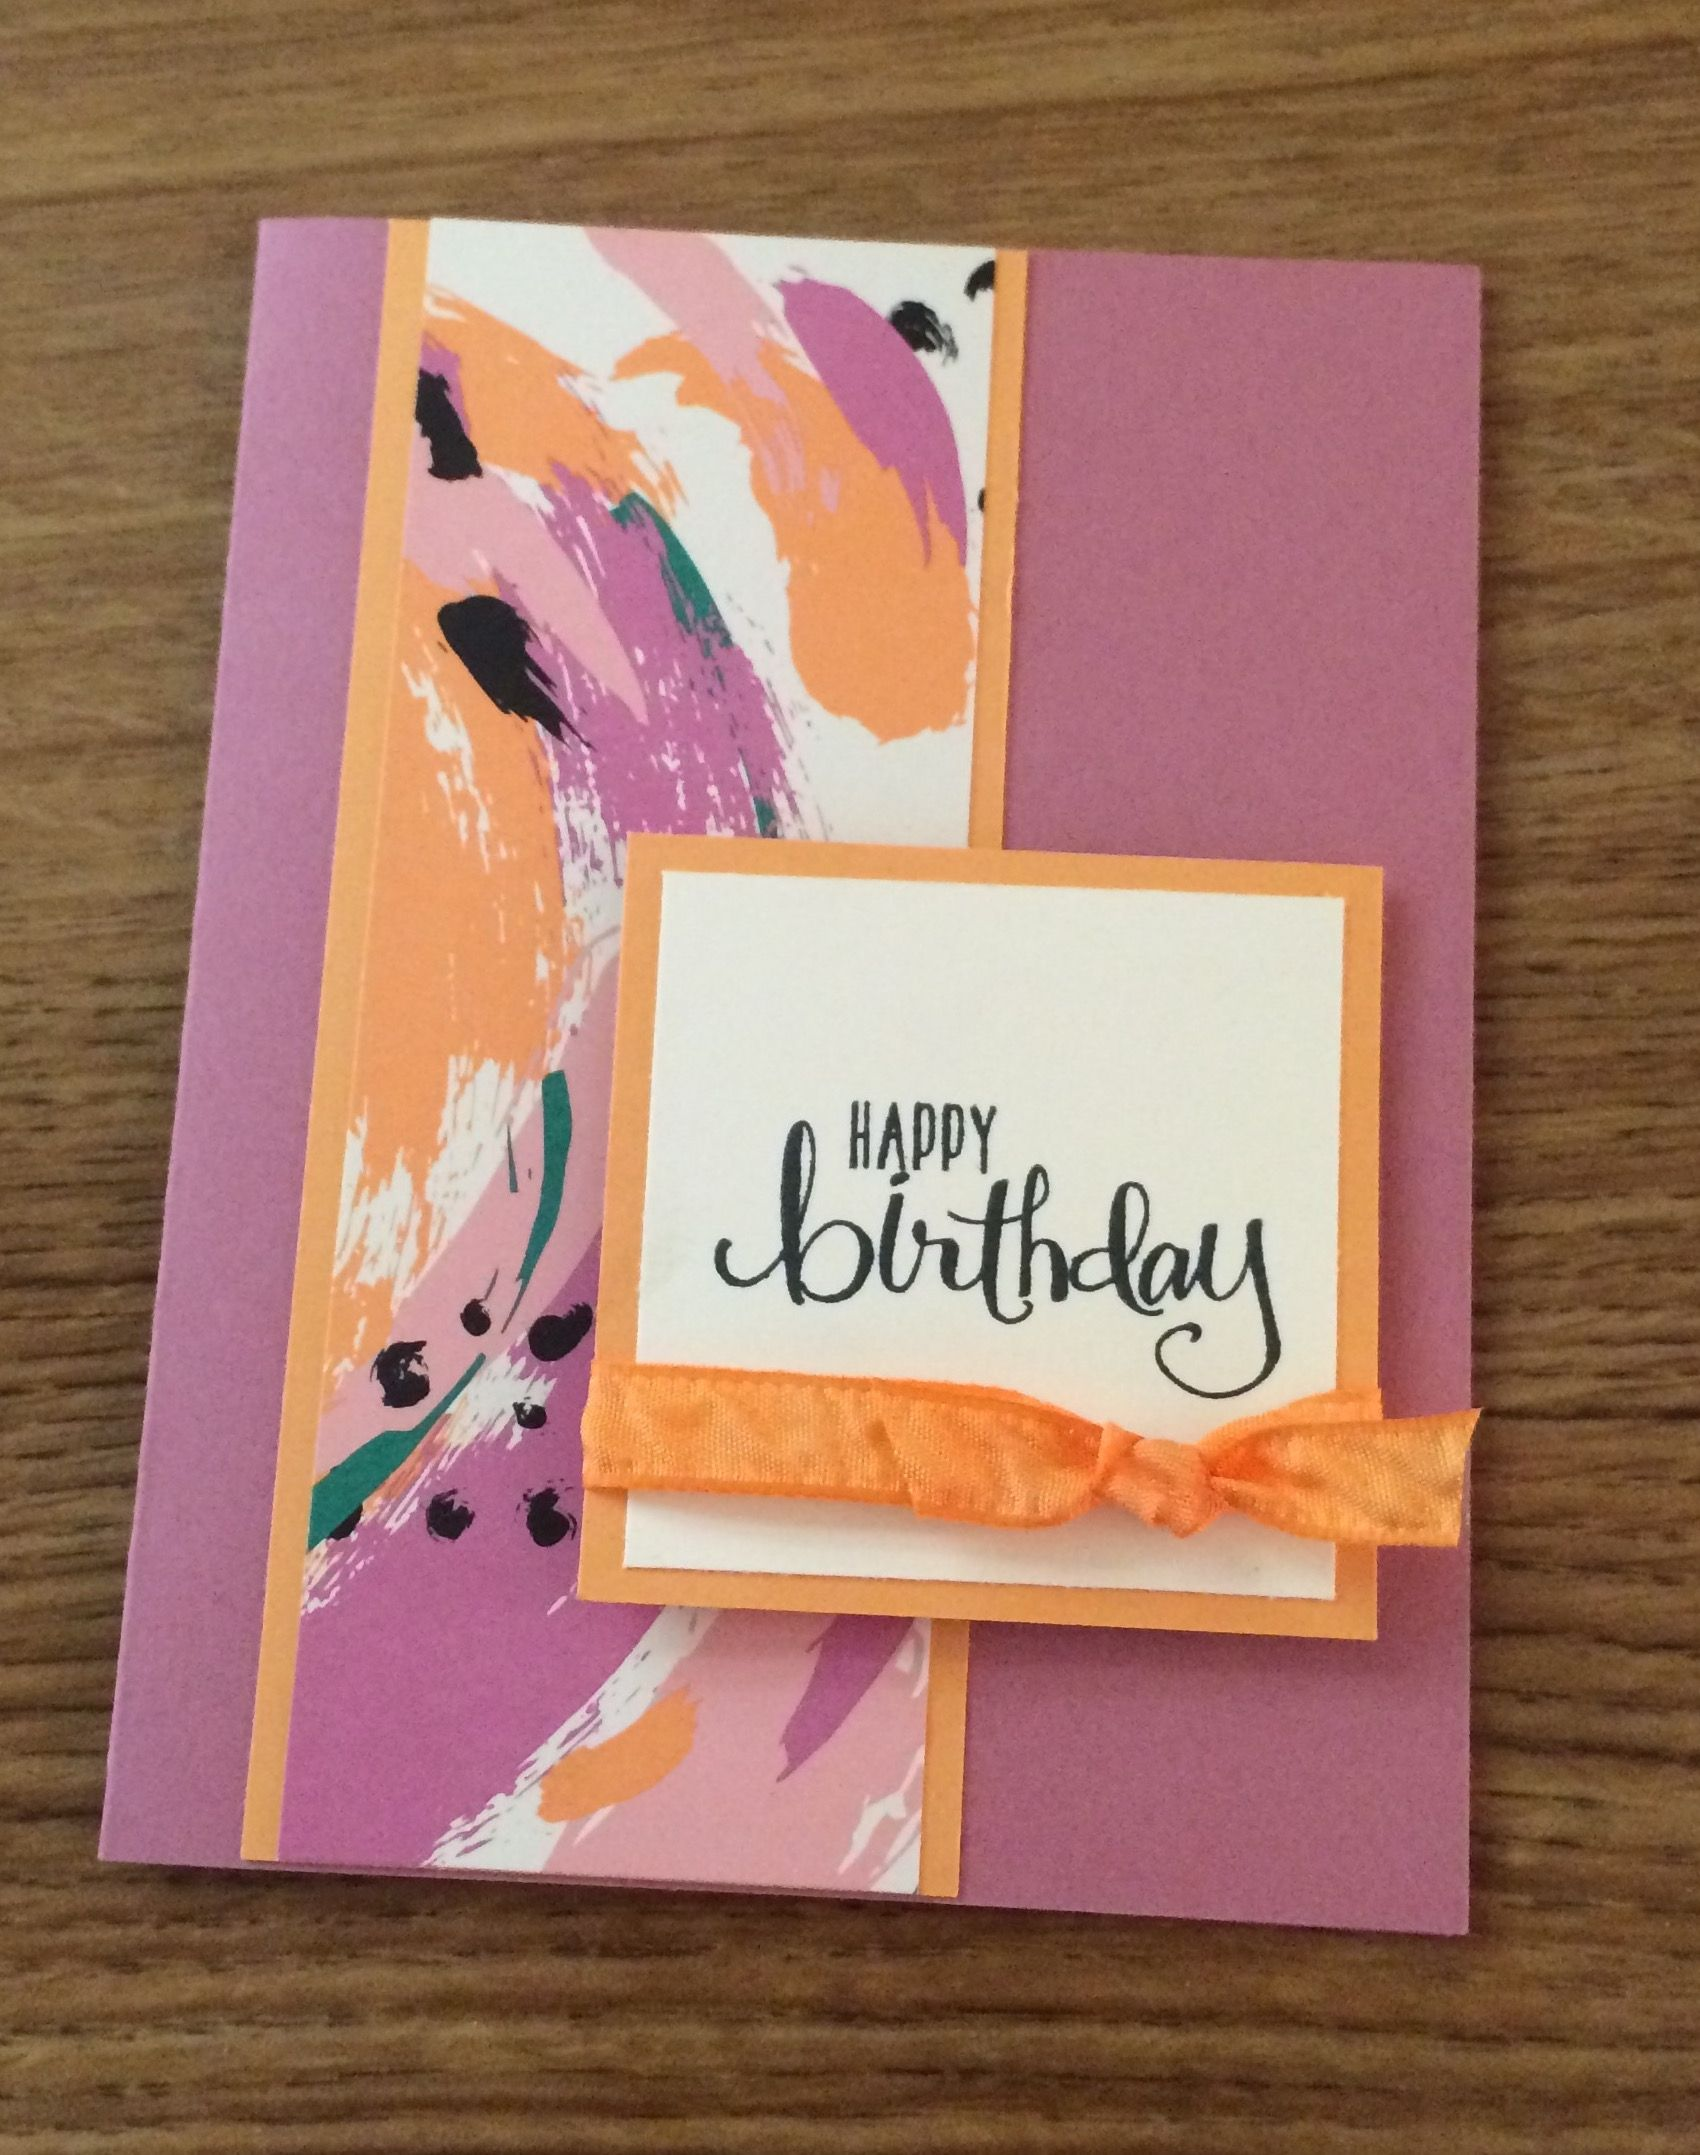 Monday, May 30, 2016 Today's Guest Stamper is Donne. Donne is on my team and she emailed me this card she made using some of the New In Colors and the New Playful Palette Designer Series Paper Stack. Great card...